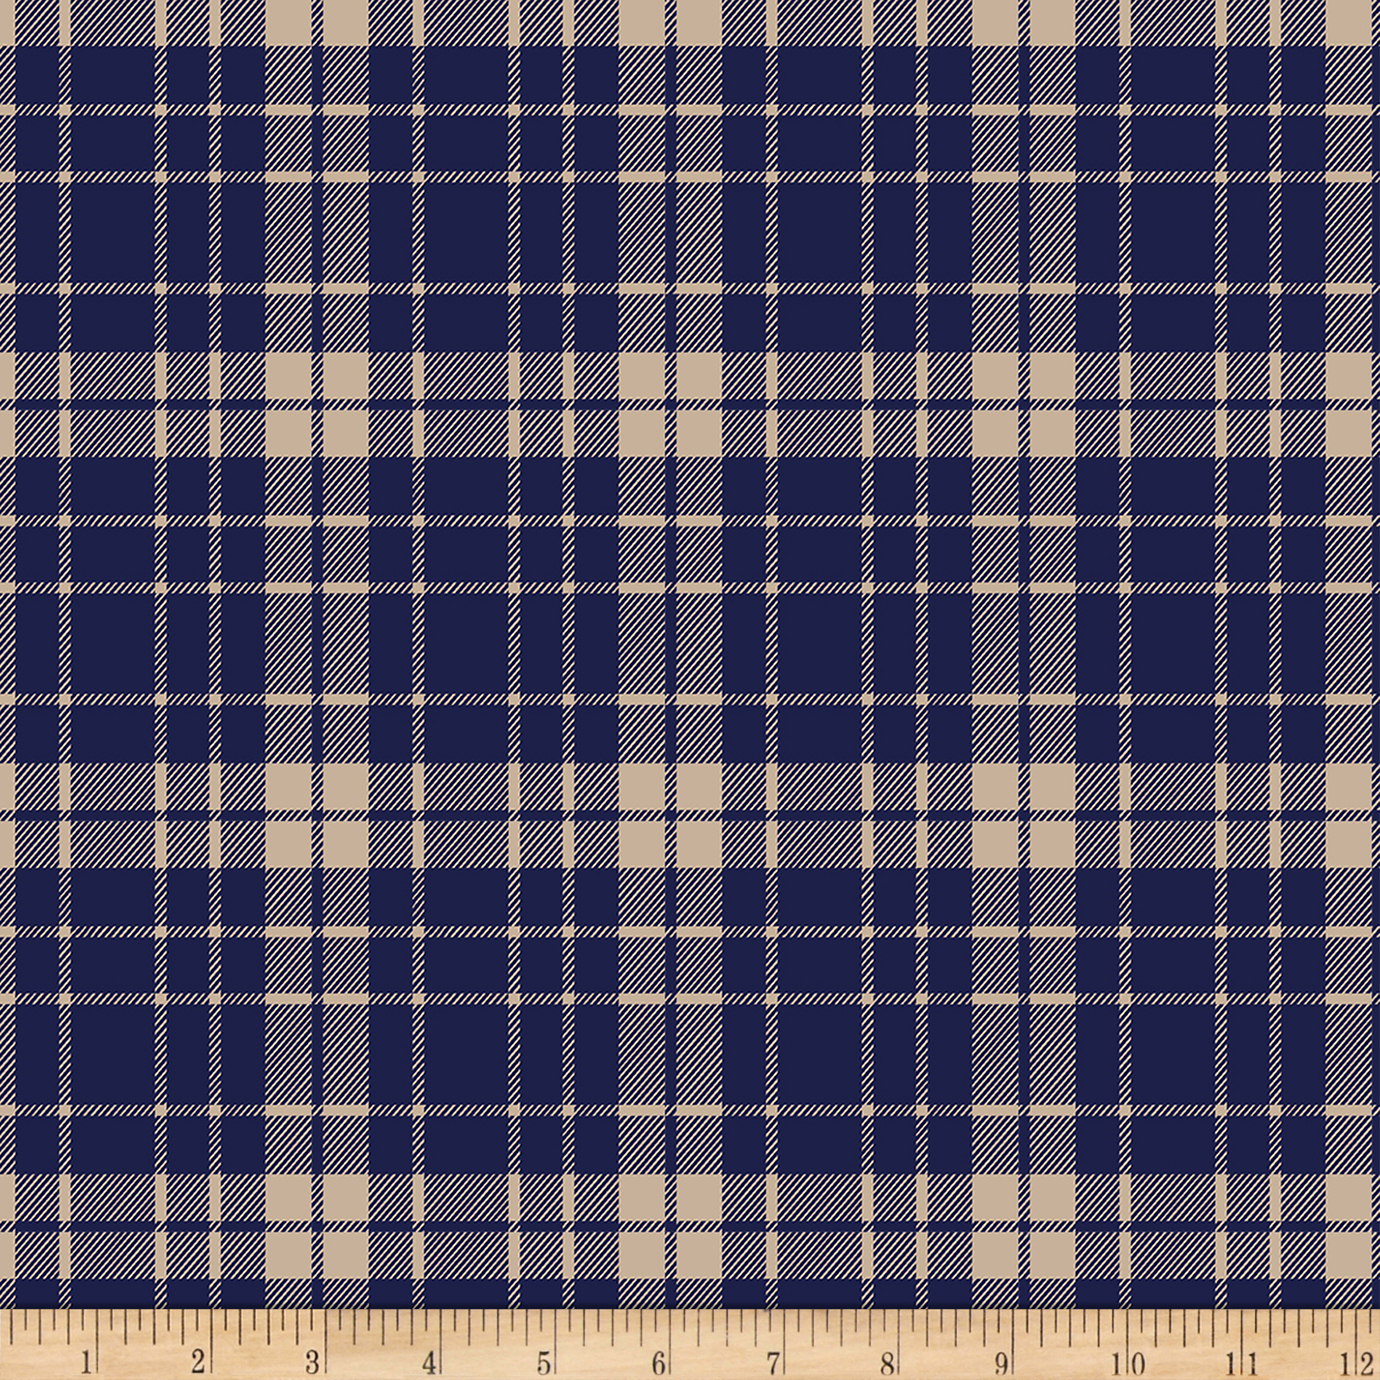 Bolt By Girl Charlee Pure Vintage Jersey Knit School Plaid Navy/taupe Fabric